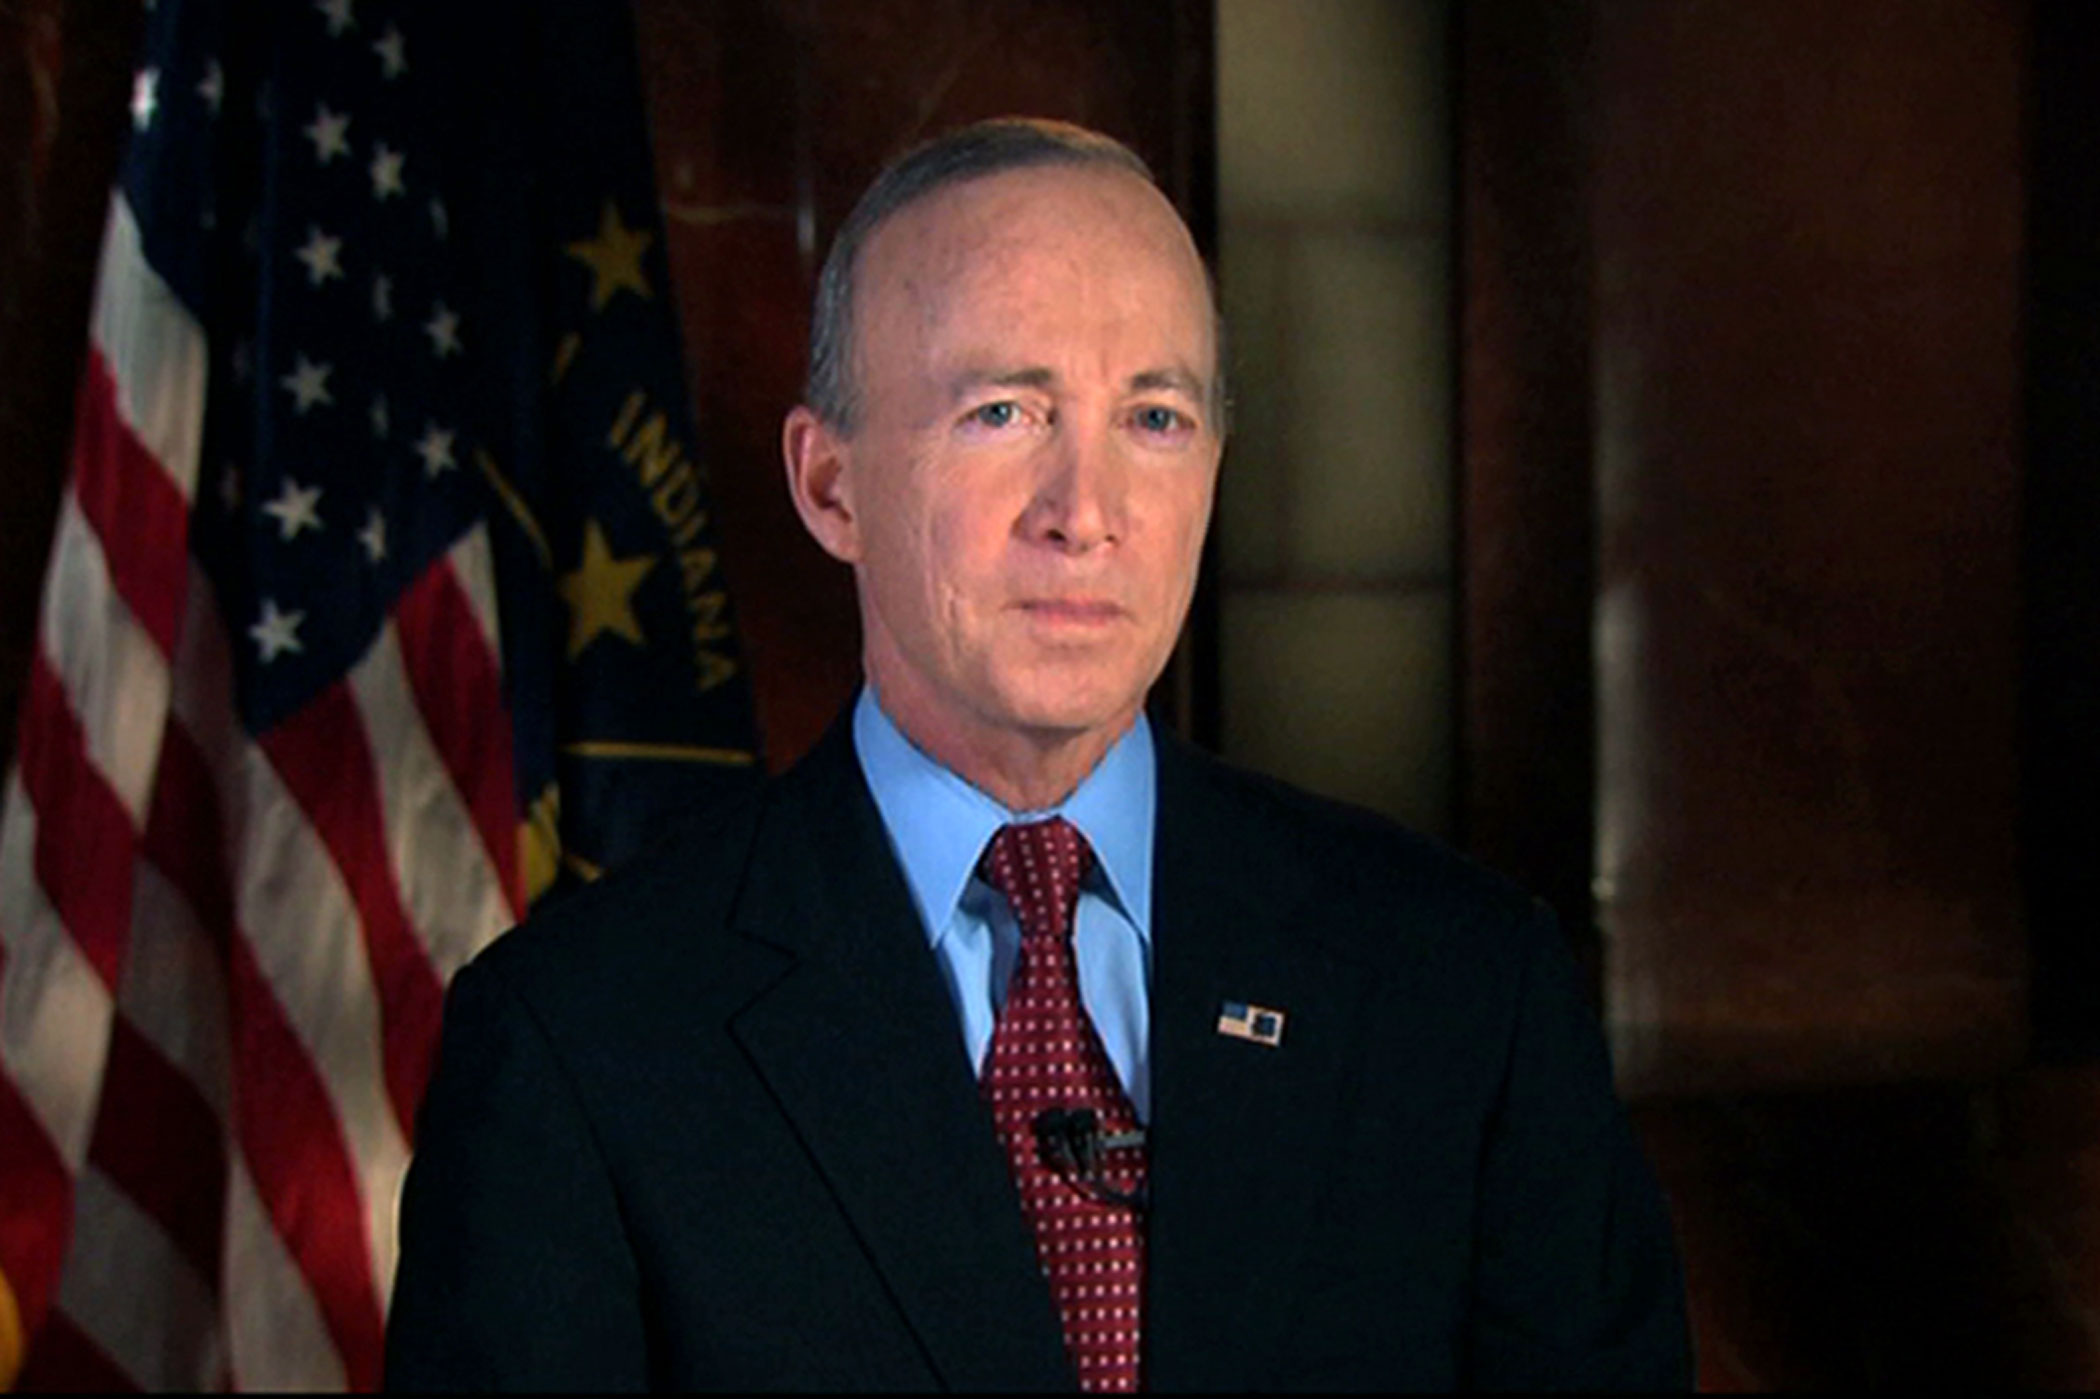 This still image from video shows Indiana Gov. Mitch Daniels delivering the Republican response to President Barack Obama's State of the Union address in Washington on Jan. 24, 2012.